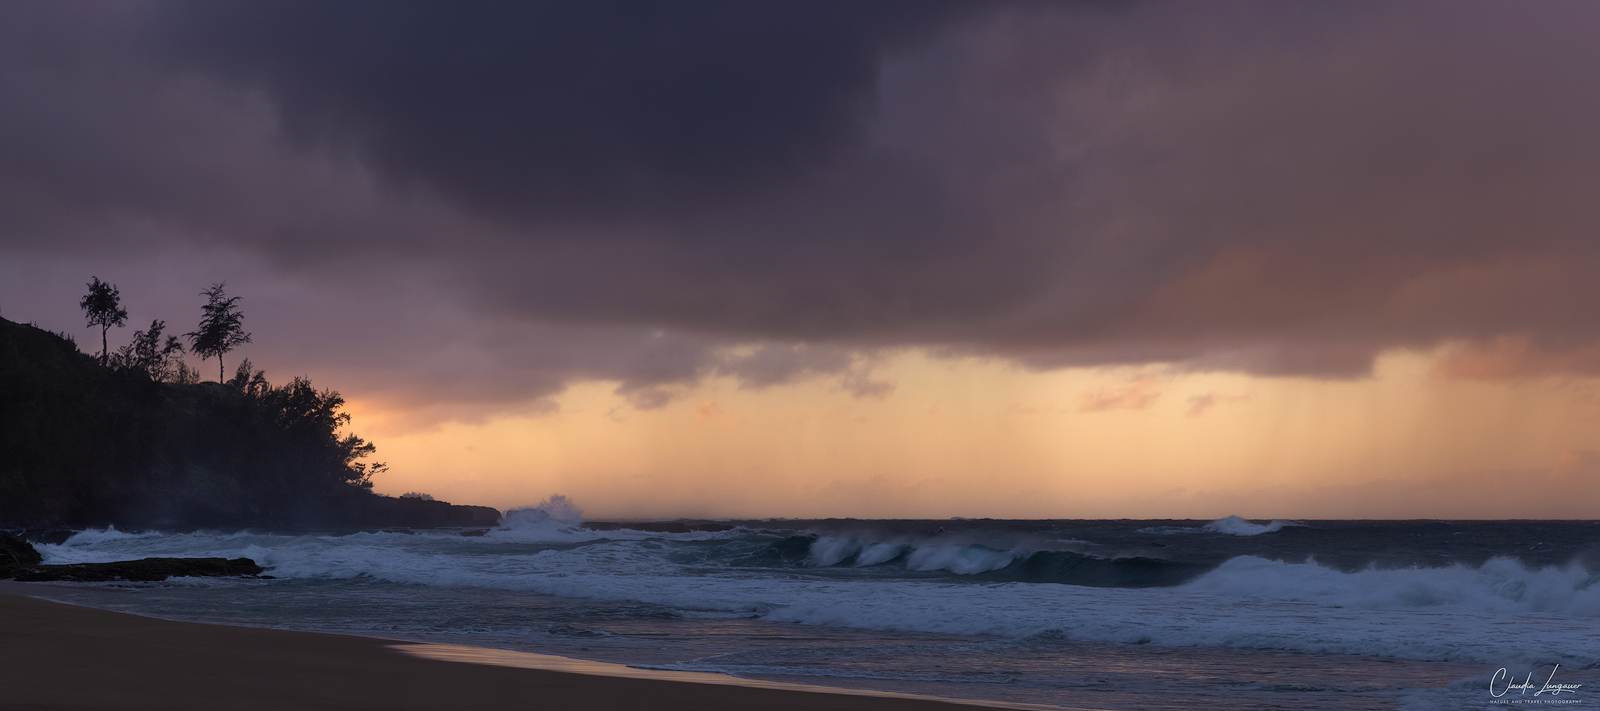 Dramatic clouds and waves at Secret Beach on Kauai's north shore in Hawaii.